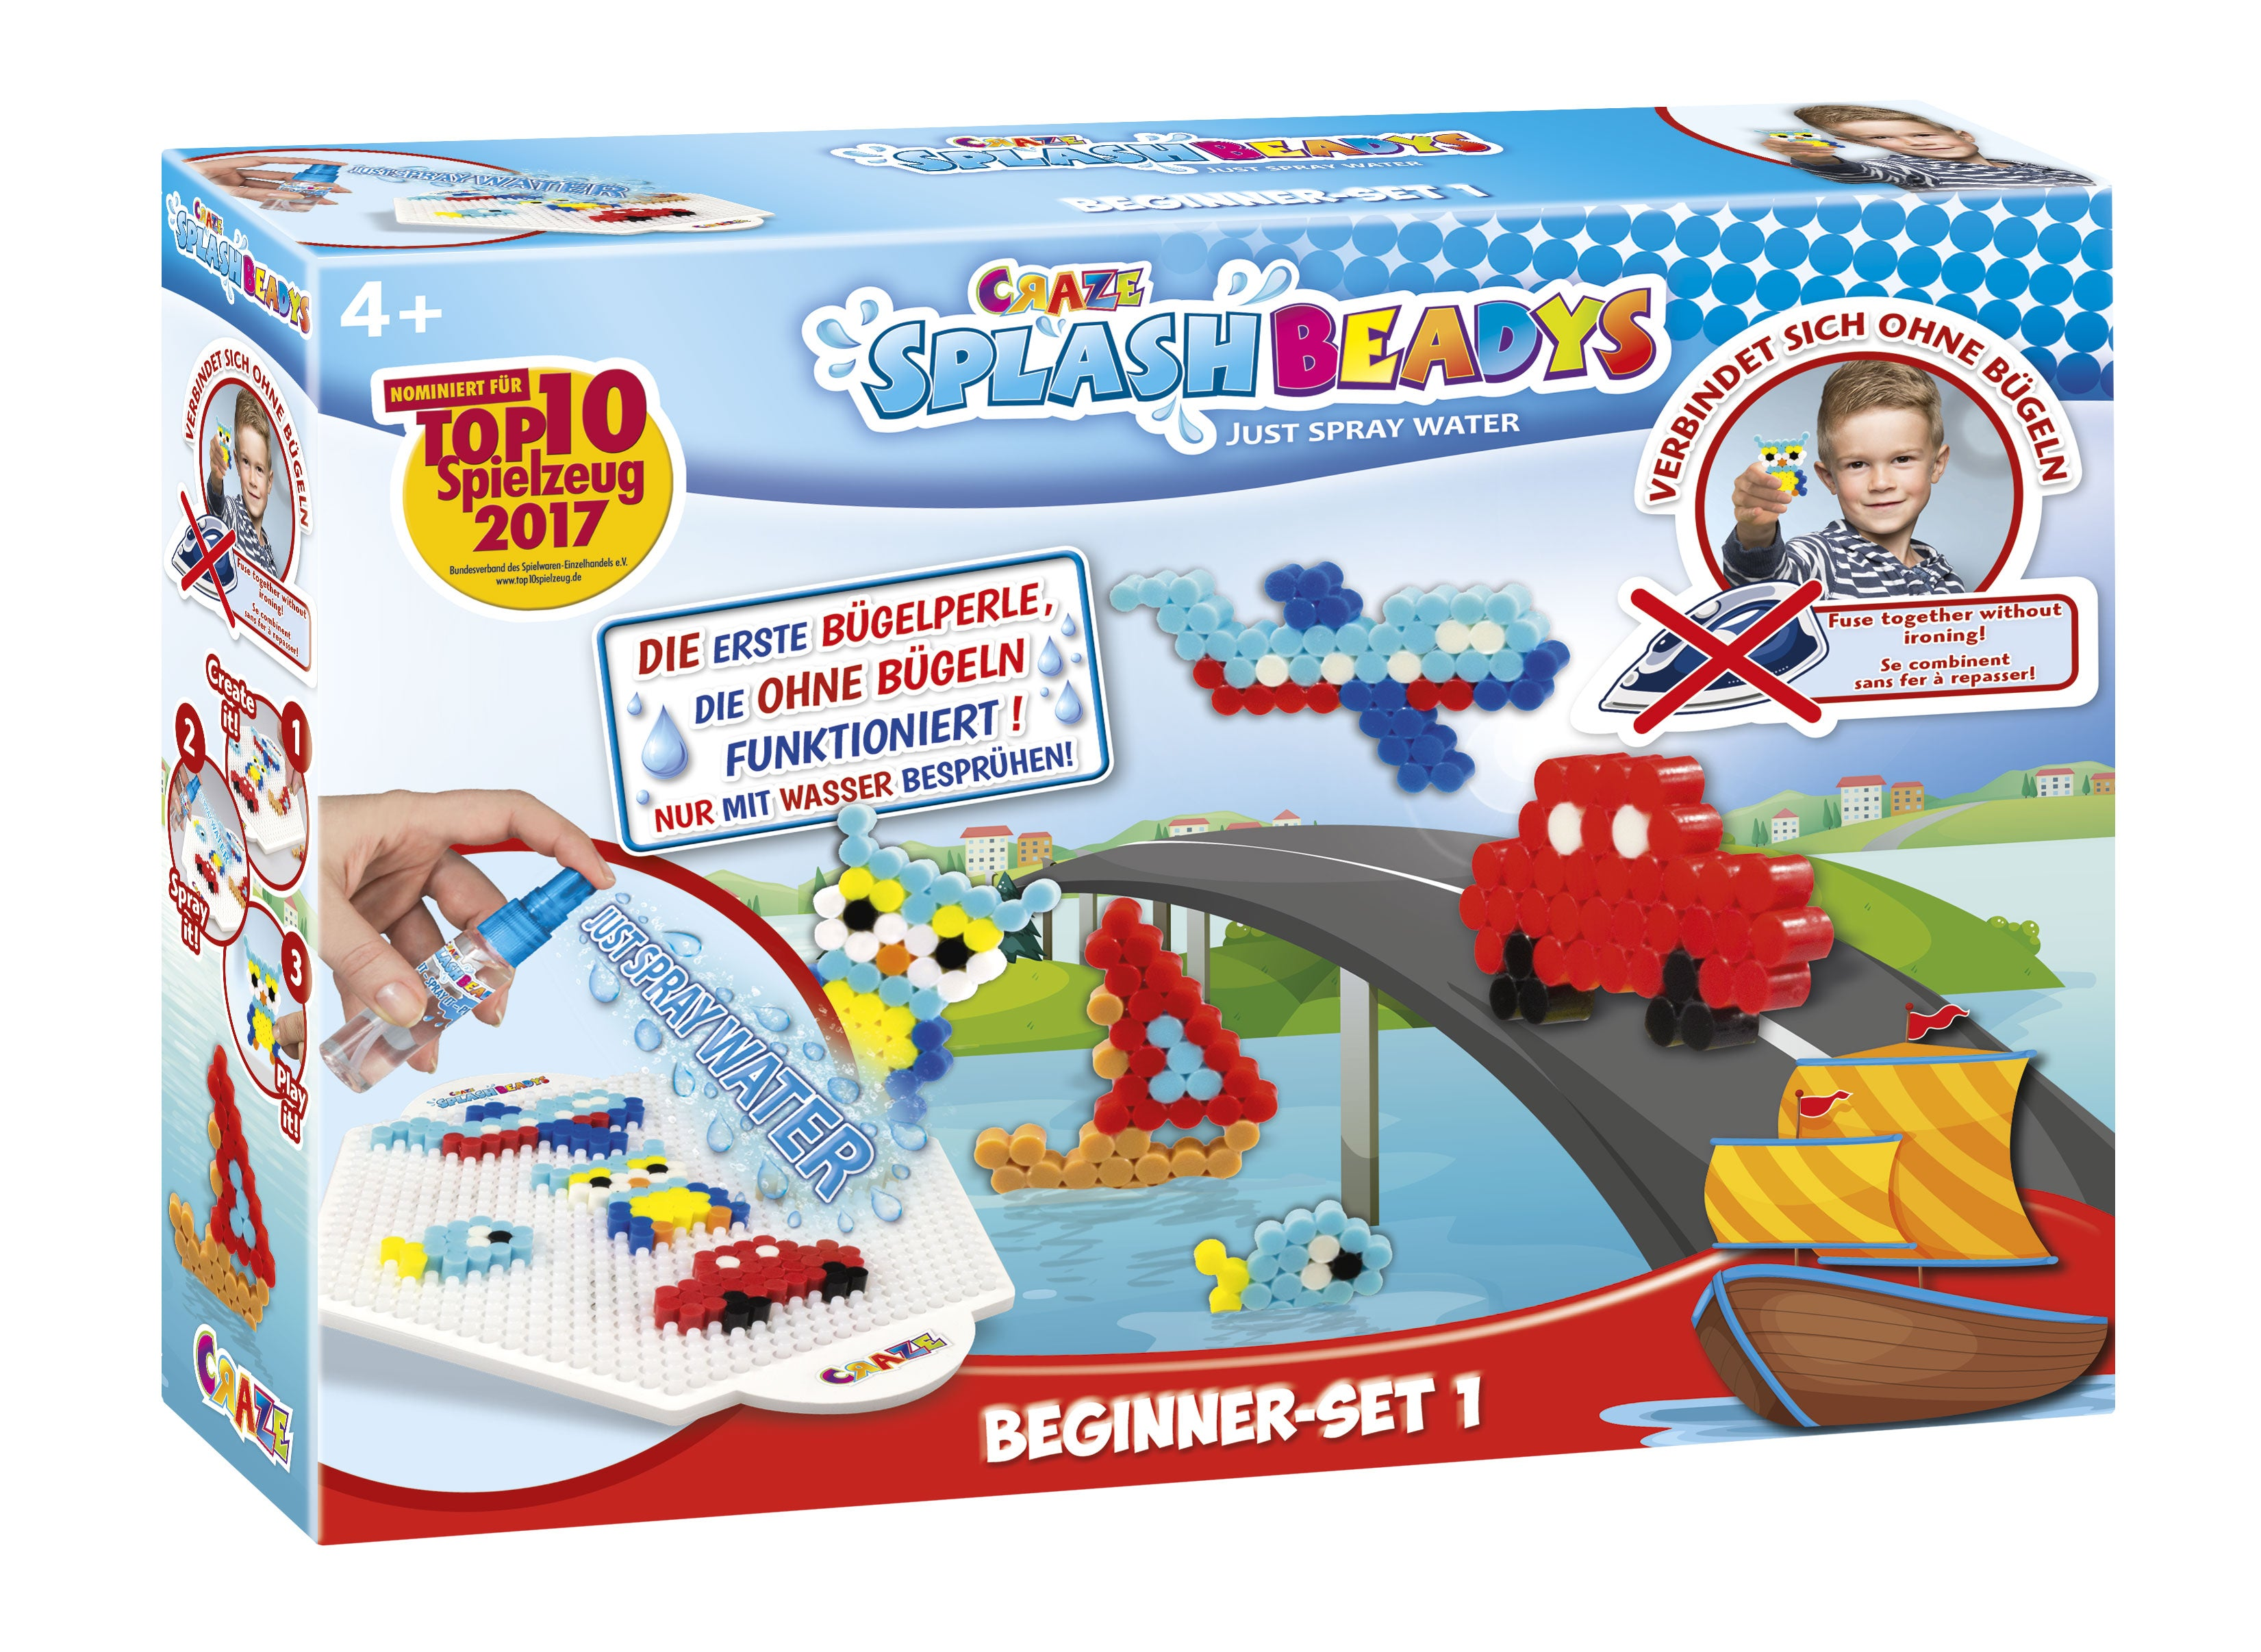 CRAZE Splash Boys 15278 Beadys – Beginner Set, Multi-Colour - Wild Willy